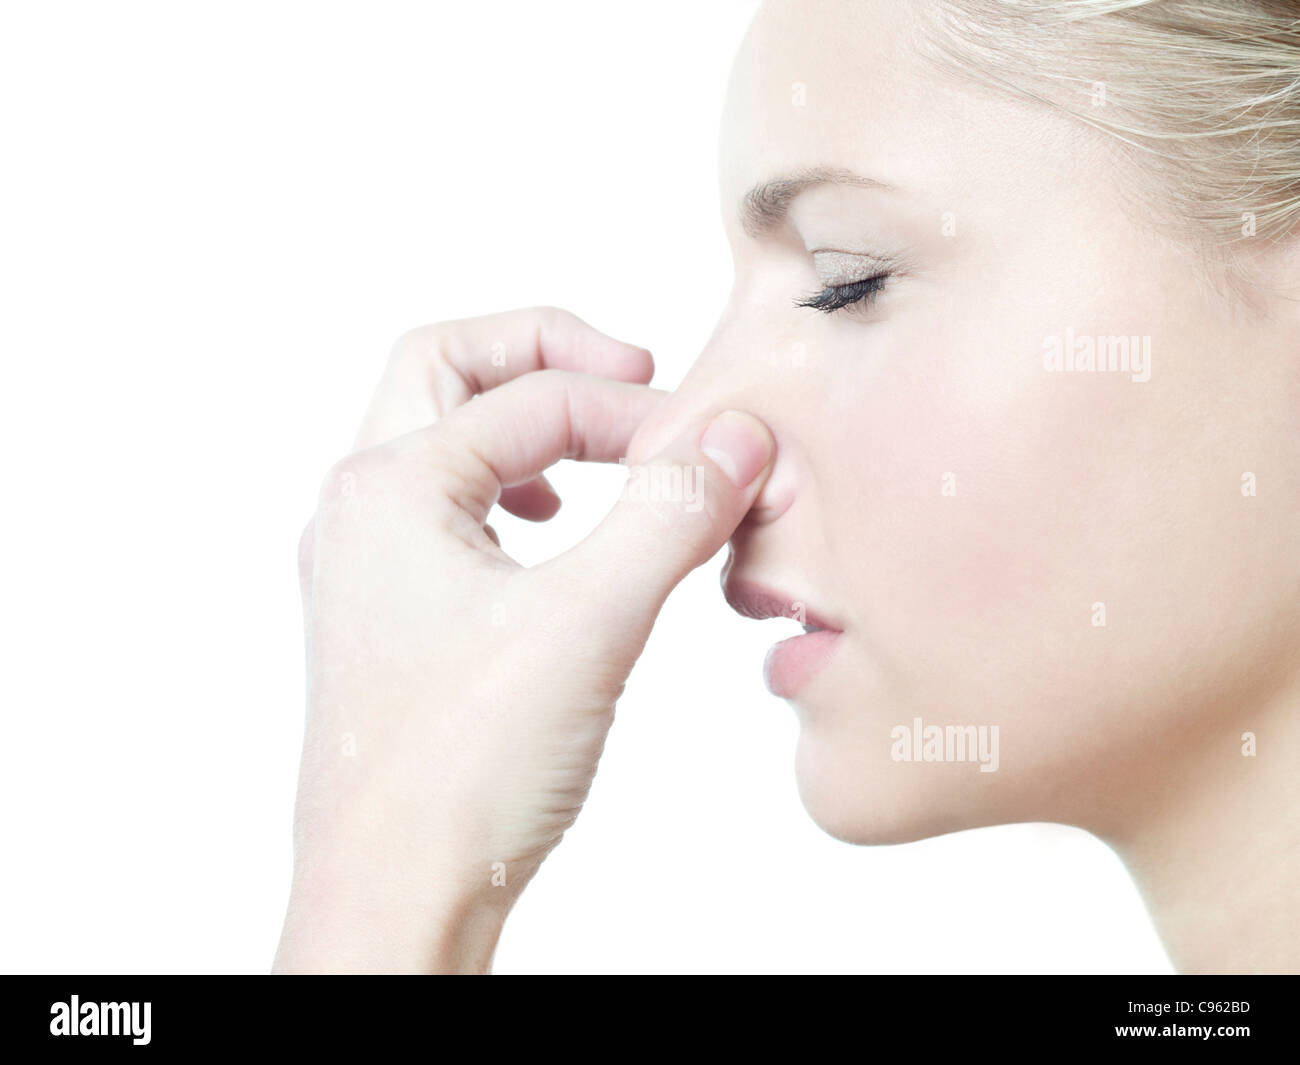 Woman holding her nose. - Stock Image